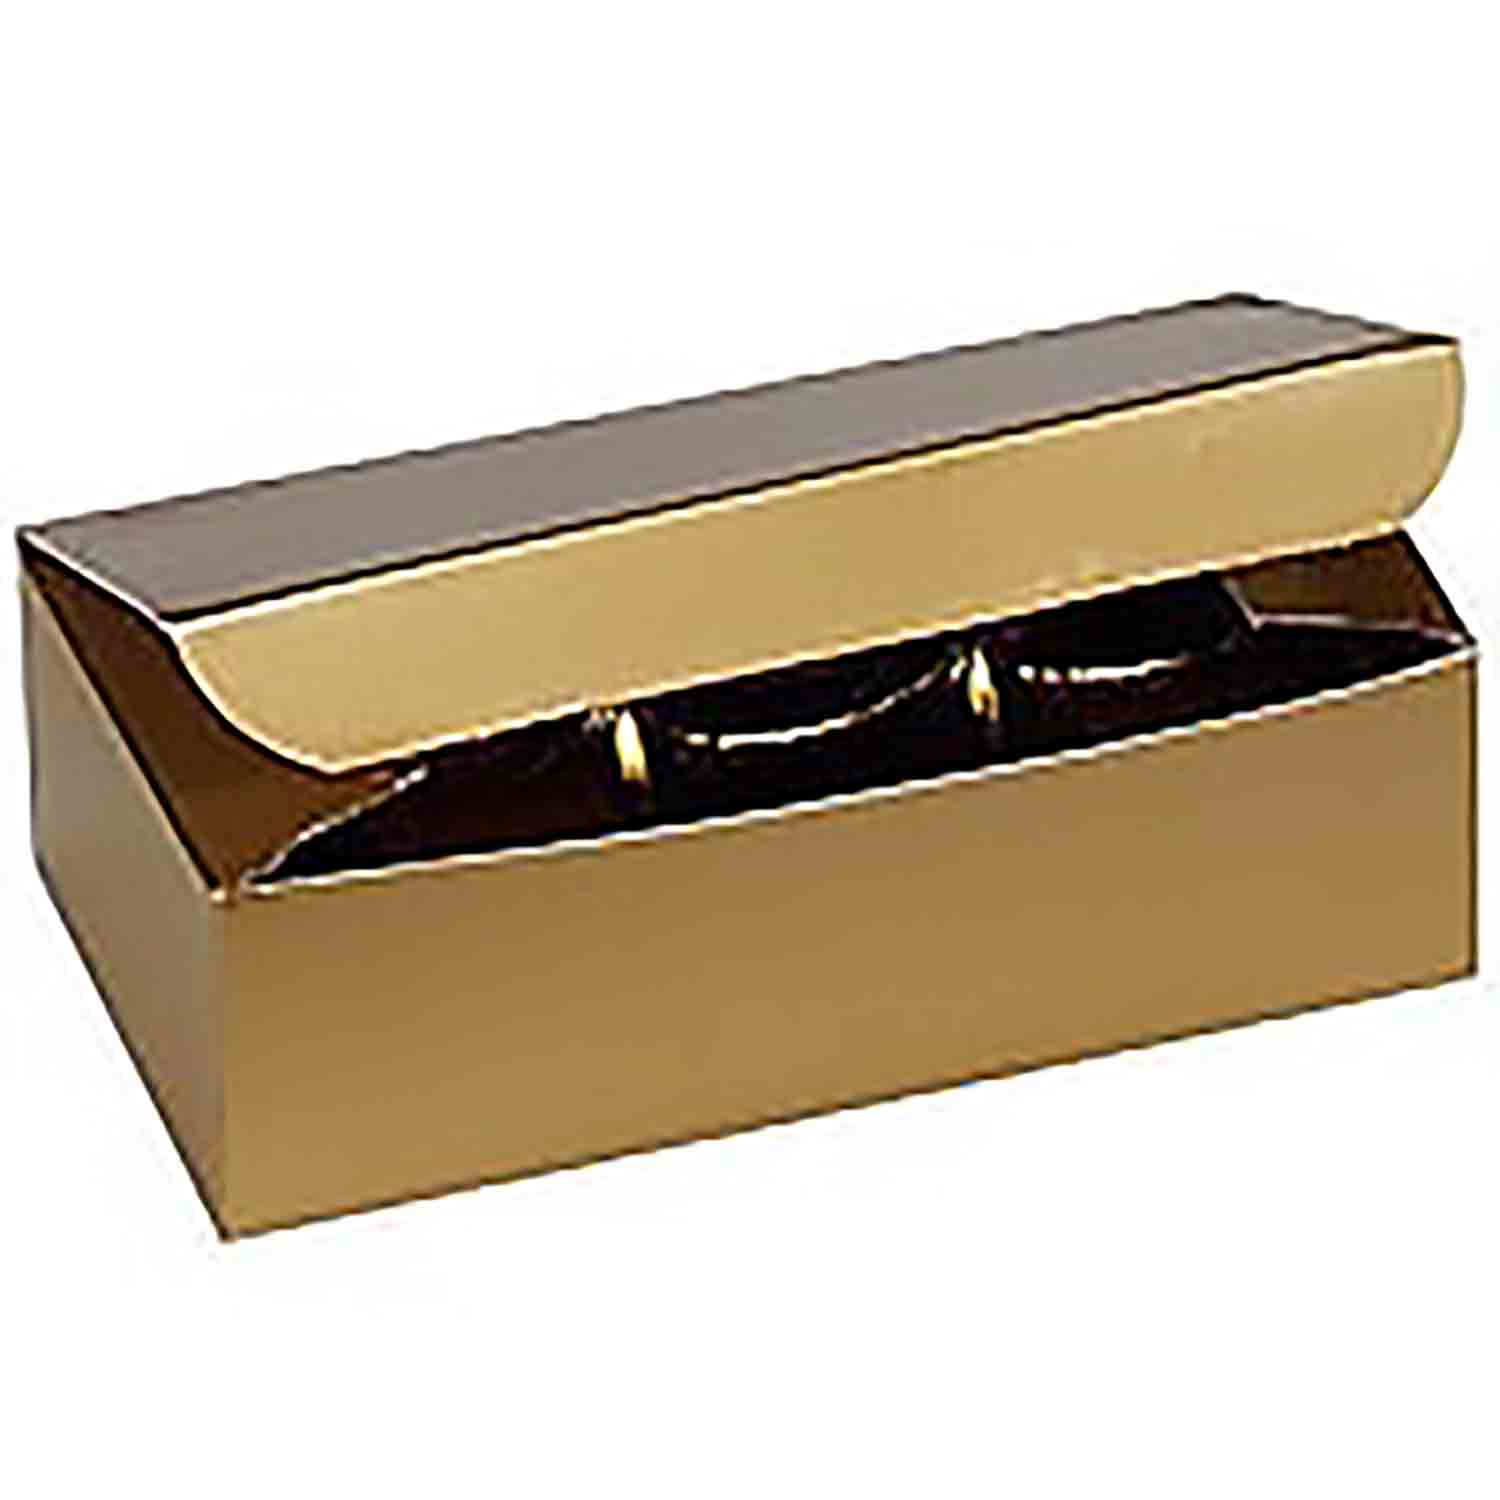 1/2 lb. Gold Candy Box